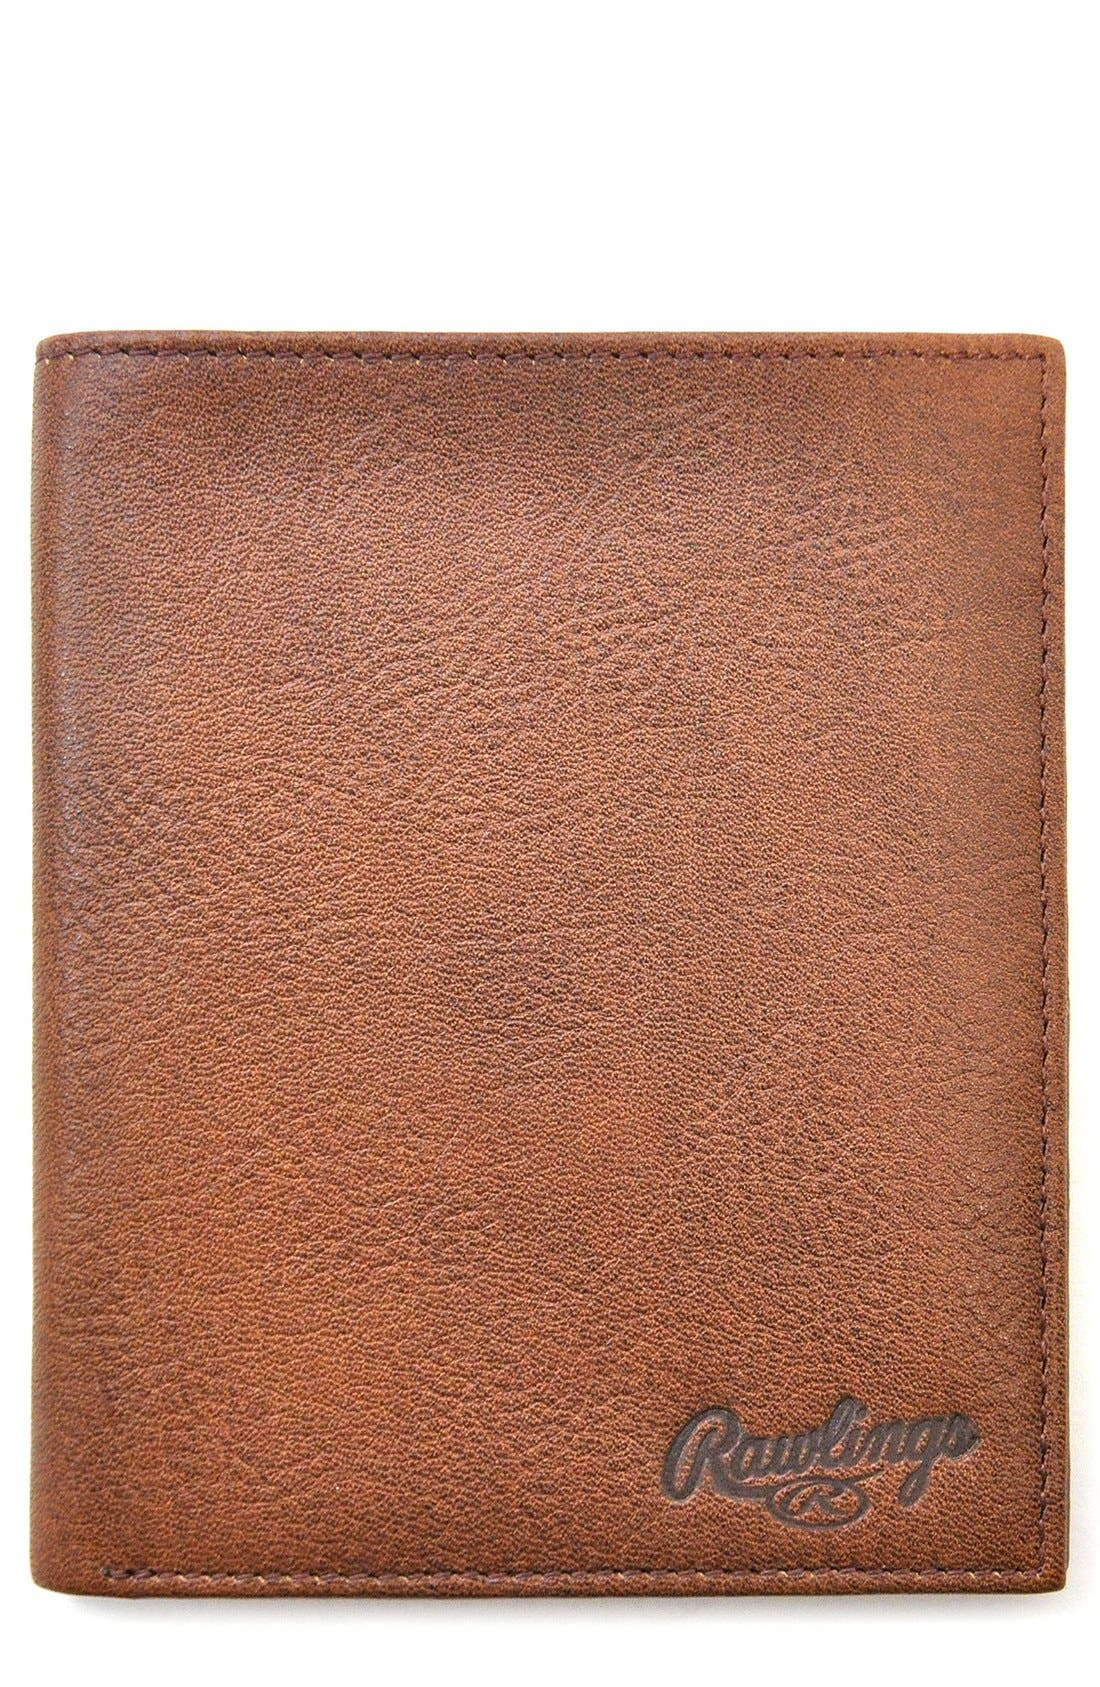 Main Image - Rawlings® Triple Play Leather Executive Wallet